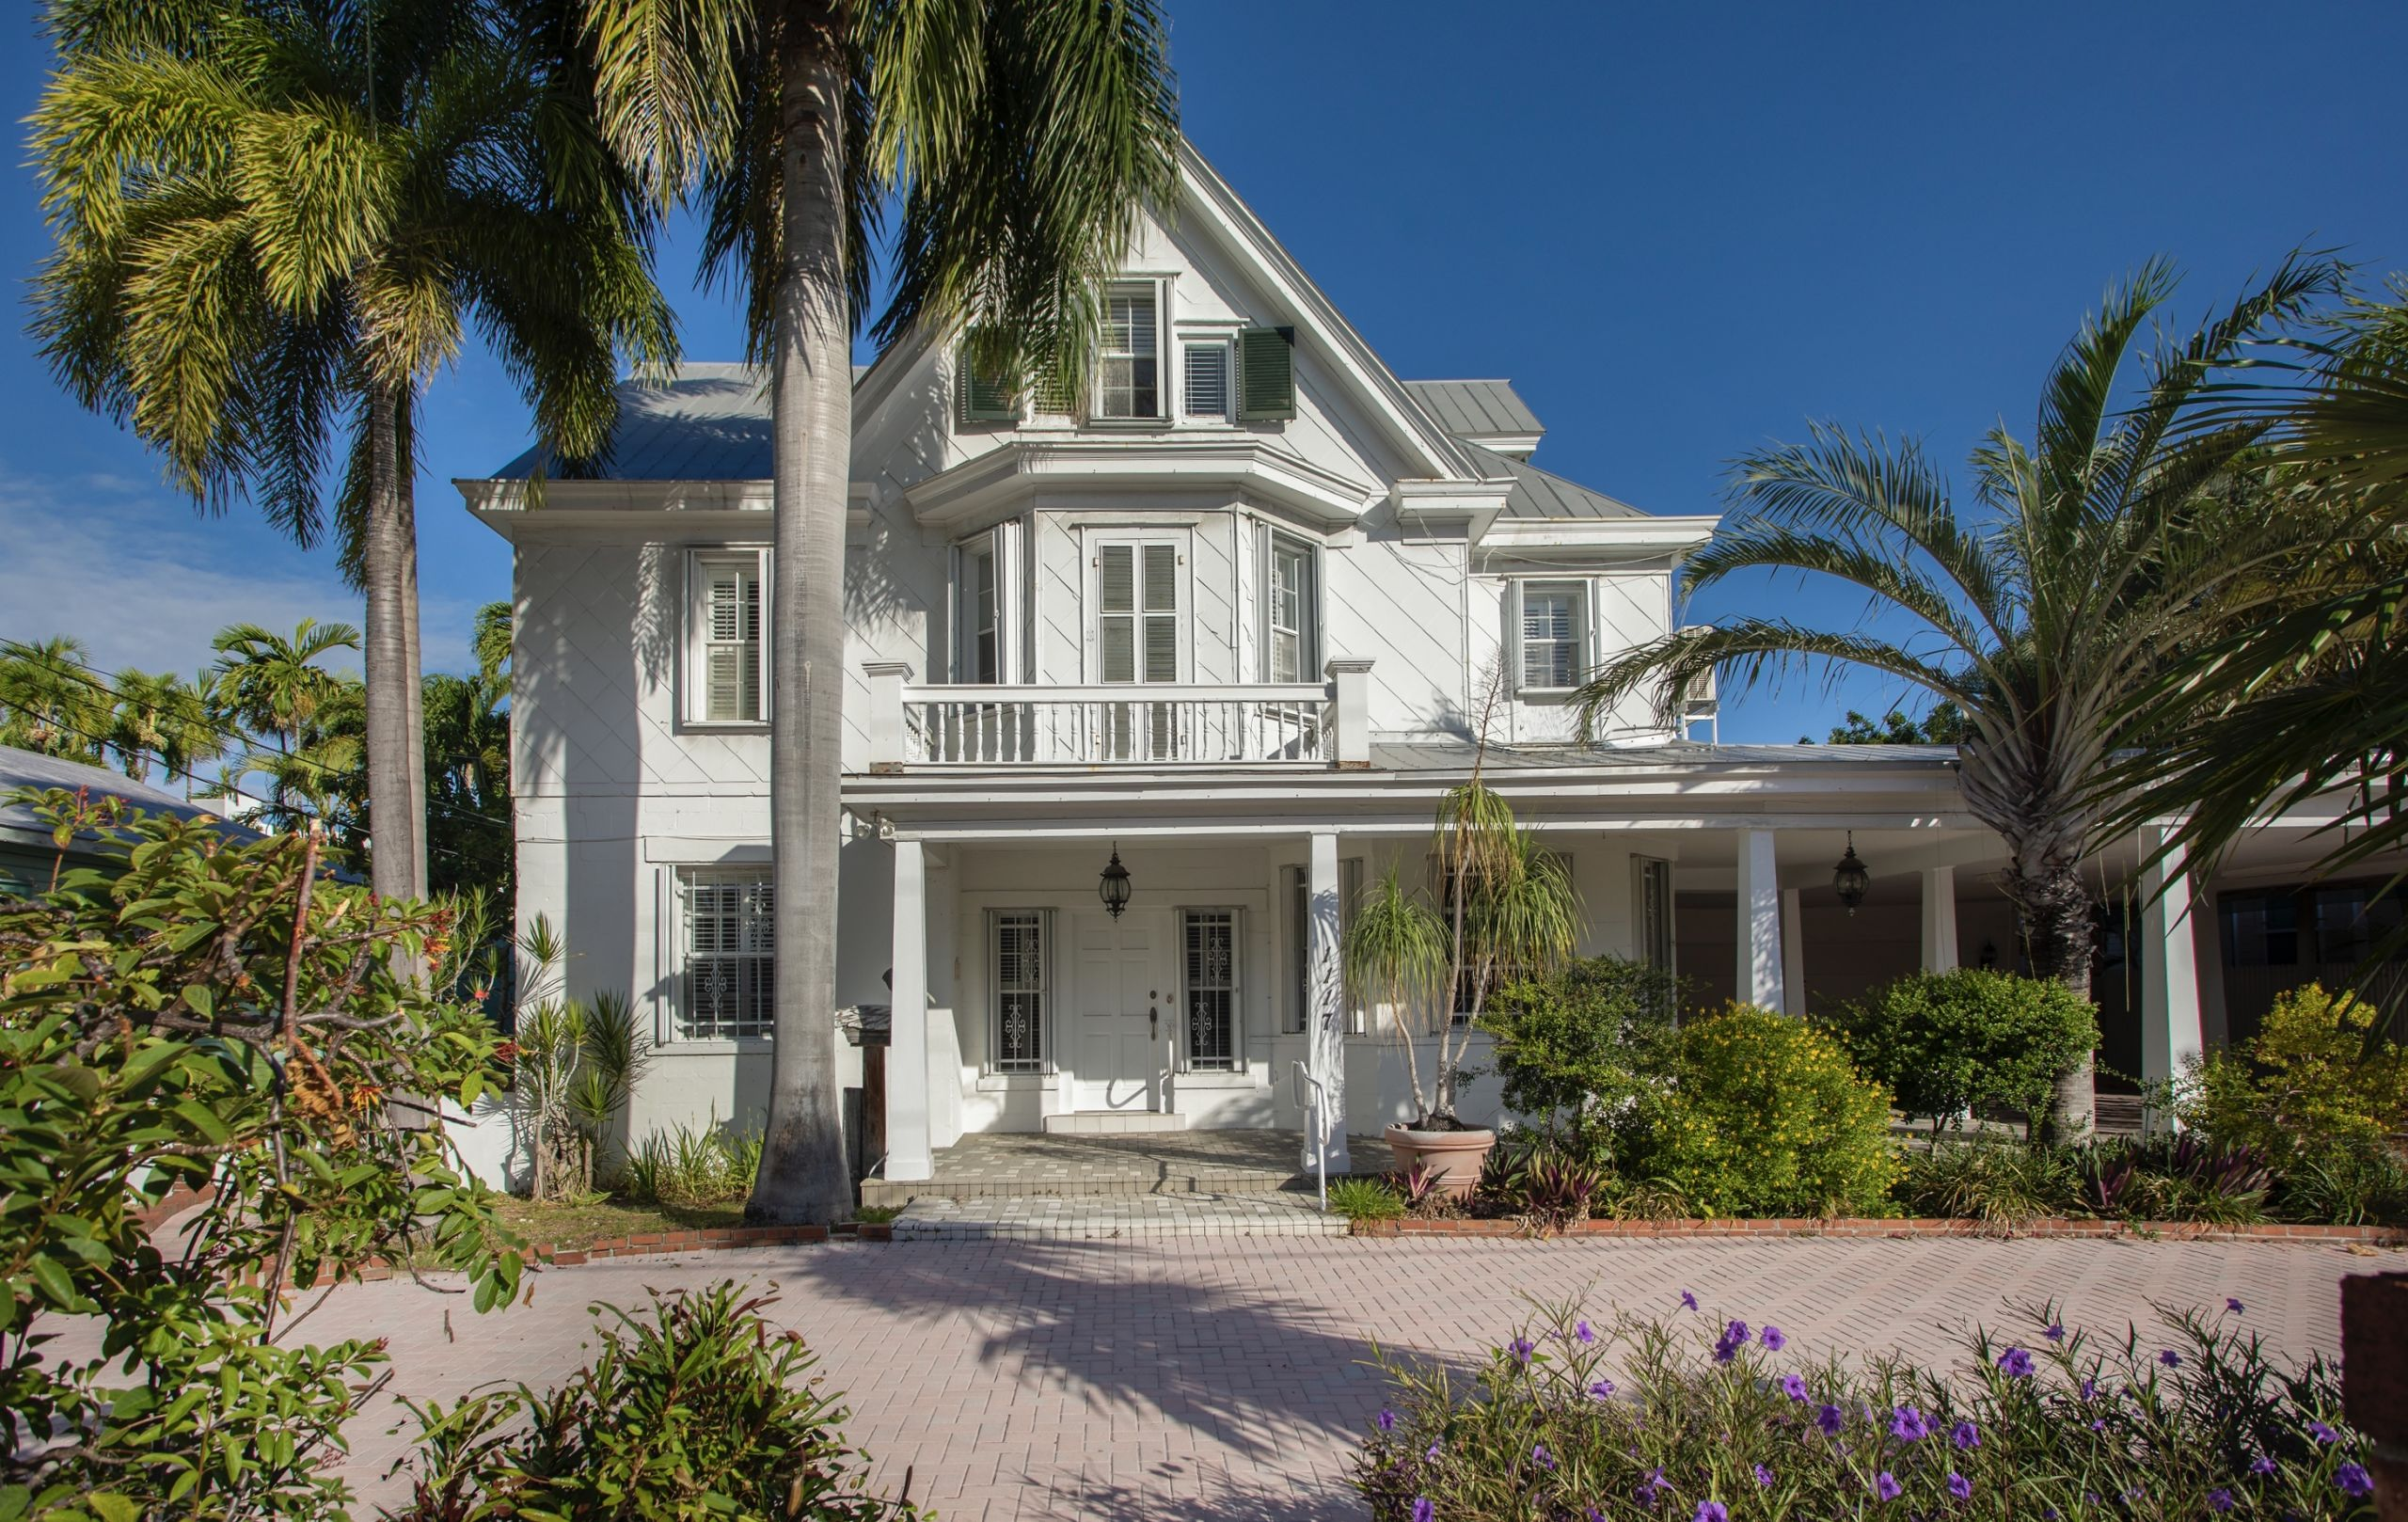 Major Price Improvement for a Grand Key West Home, 1117 Flagler Ave.